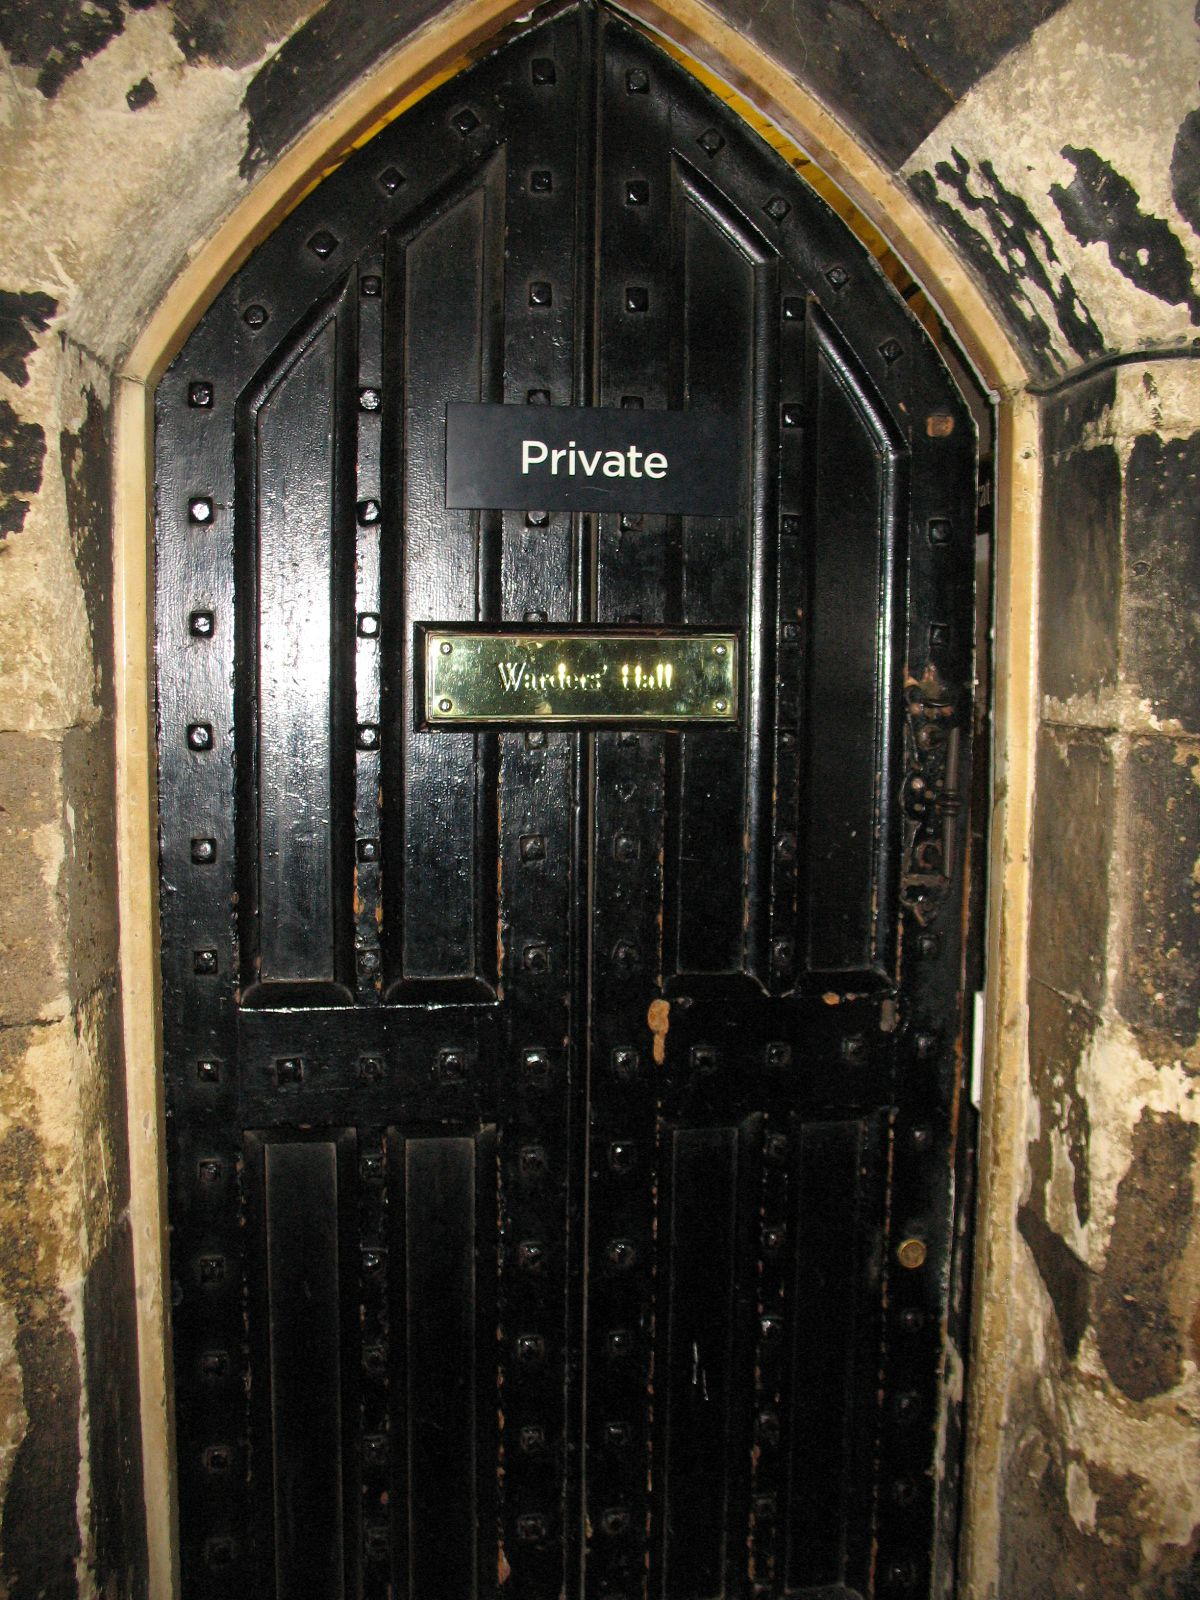 The door that the unsuspecting Anne Boleyn went through on her way to meet Henry the 8th at the Tower of London!